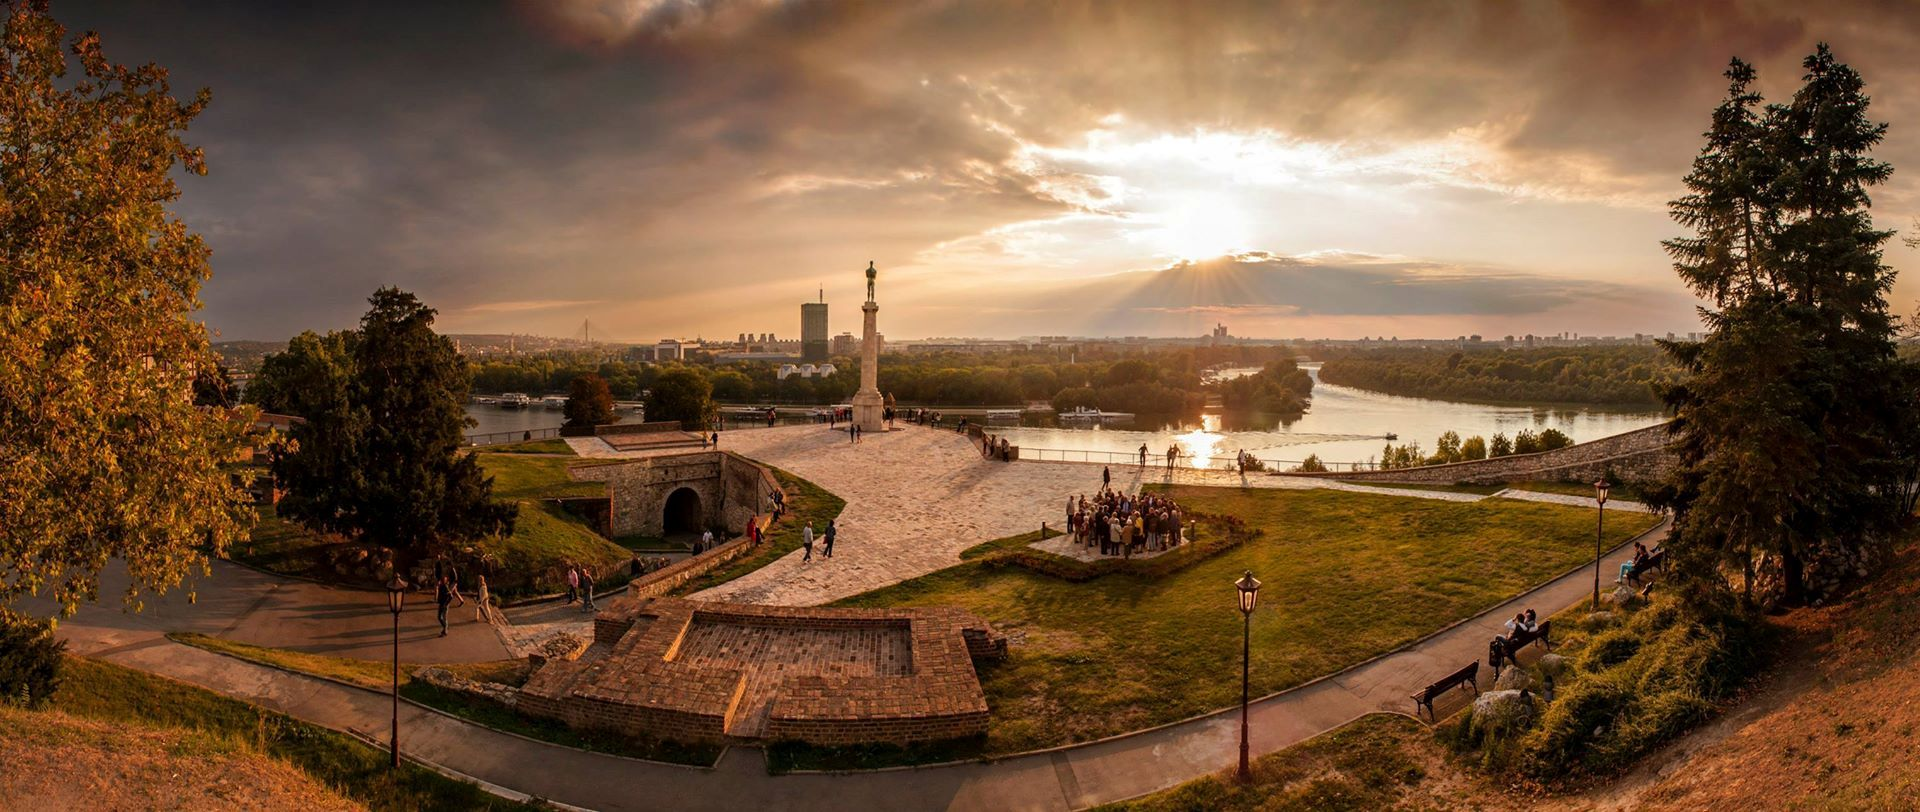 Most popular parks in belgrade kalemegdan